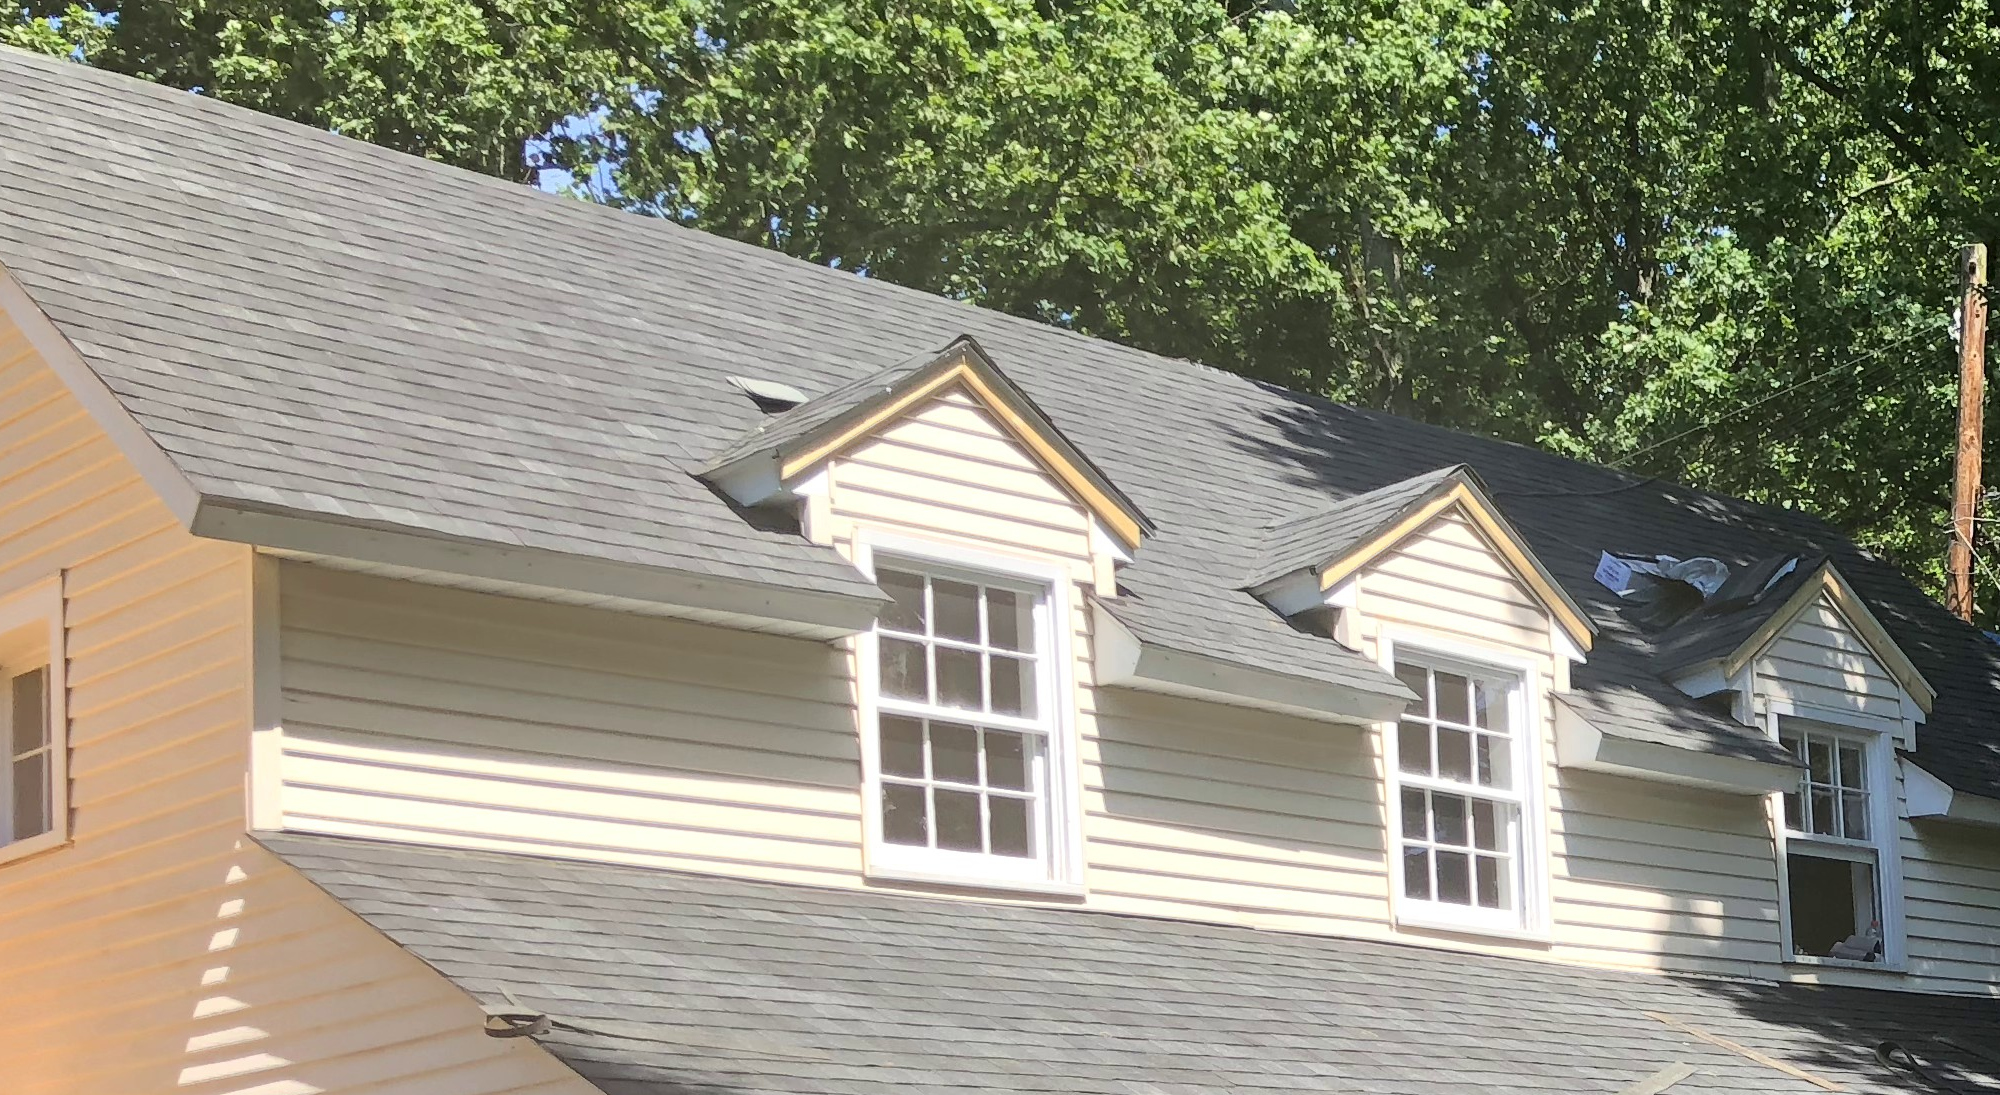 Harpers Choice Roofers Repair and Replace